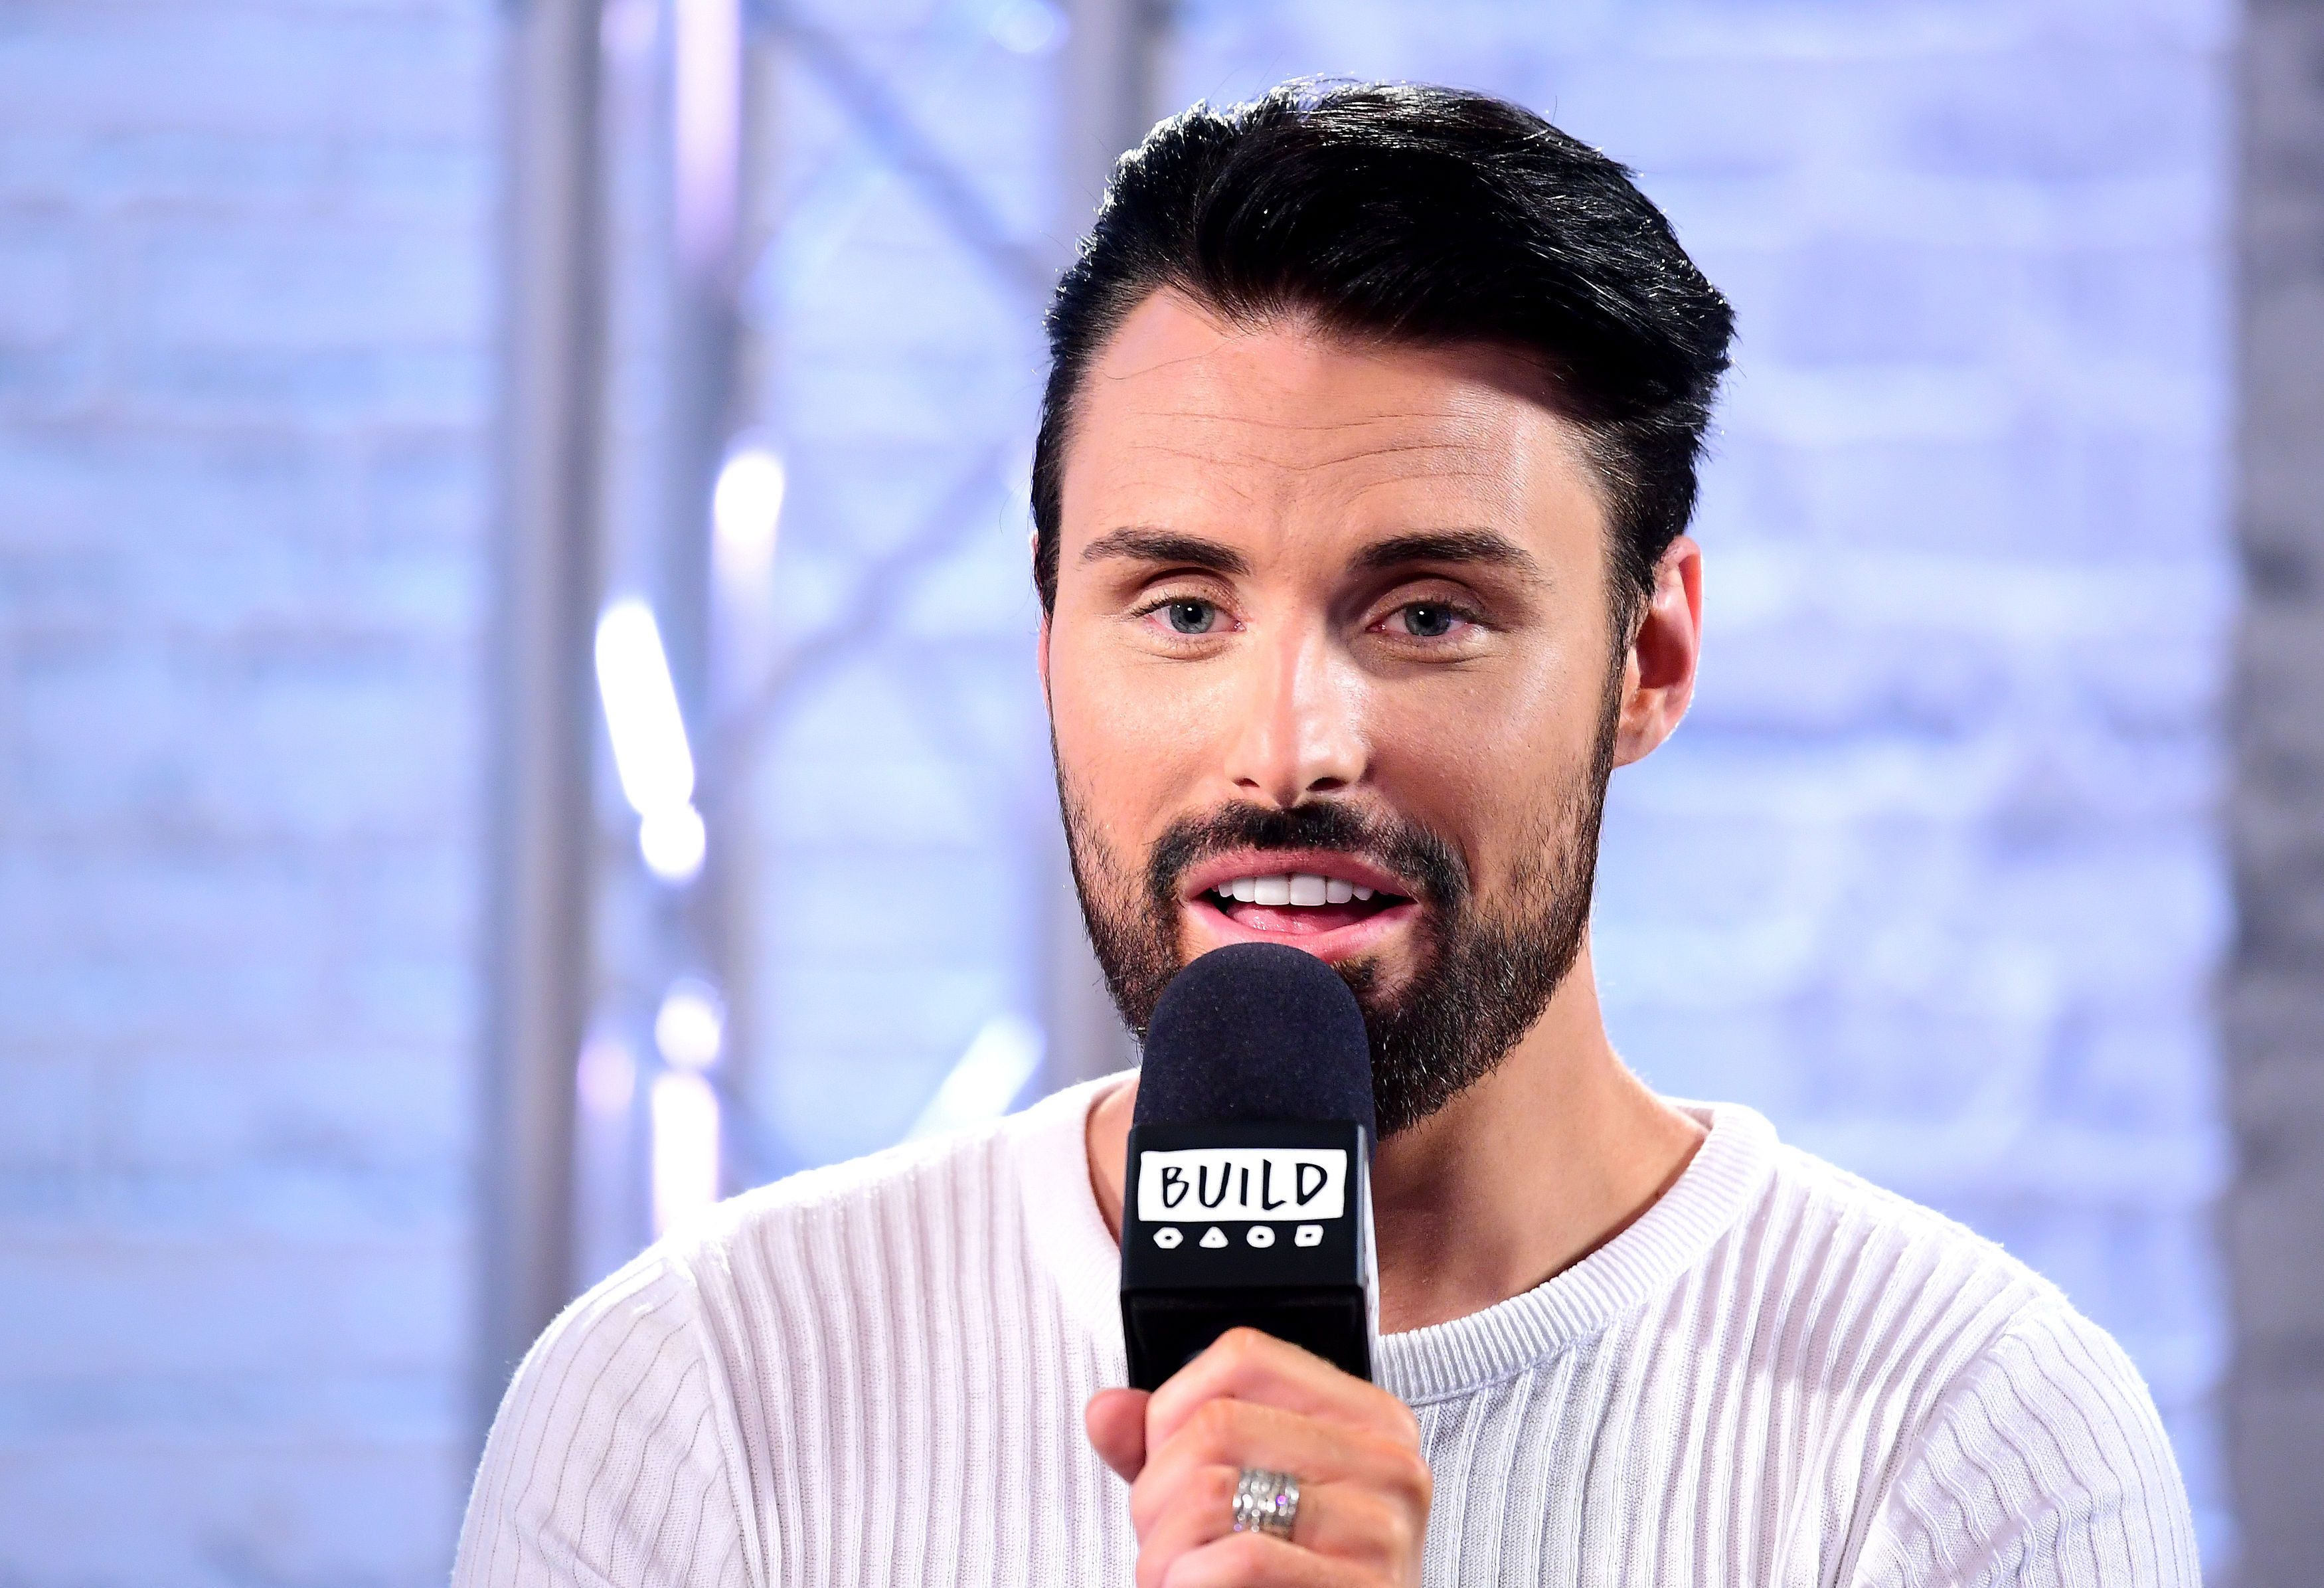 Rylan Clark-Neal appeared on an episode of